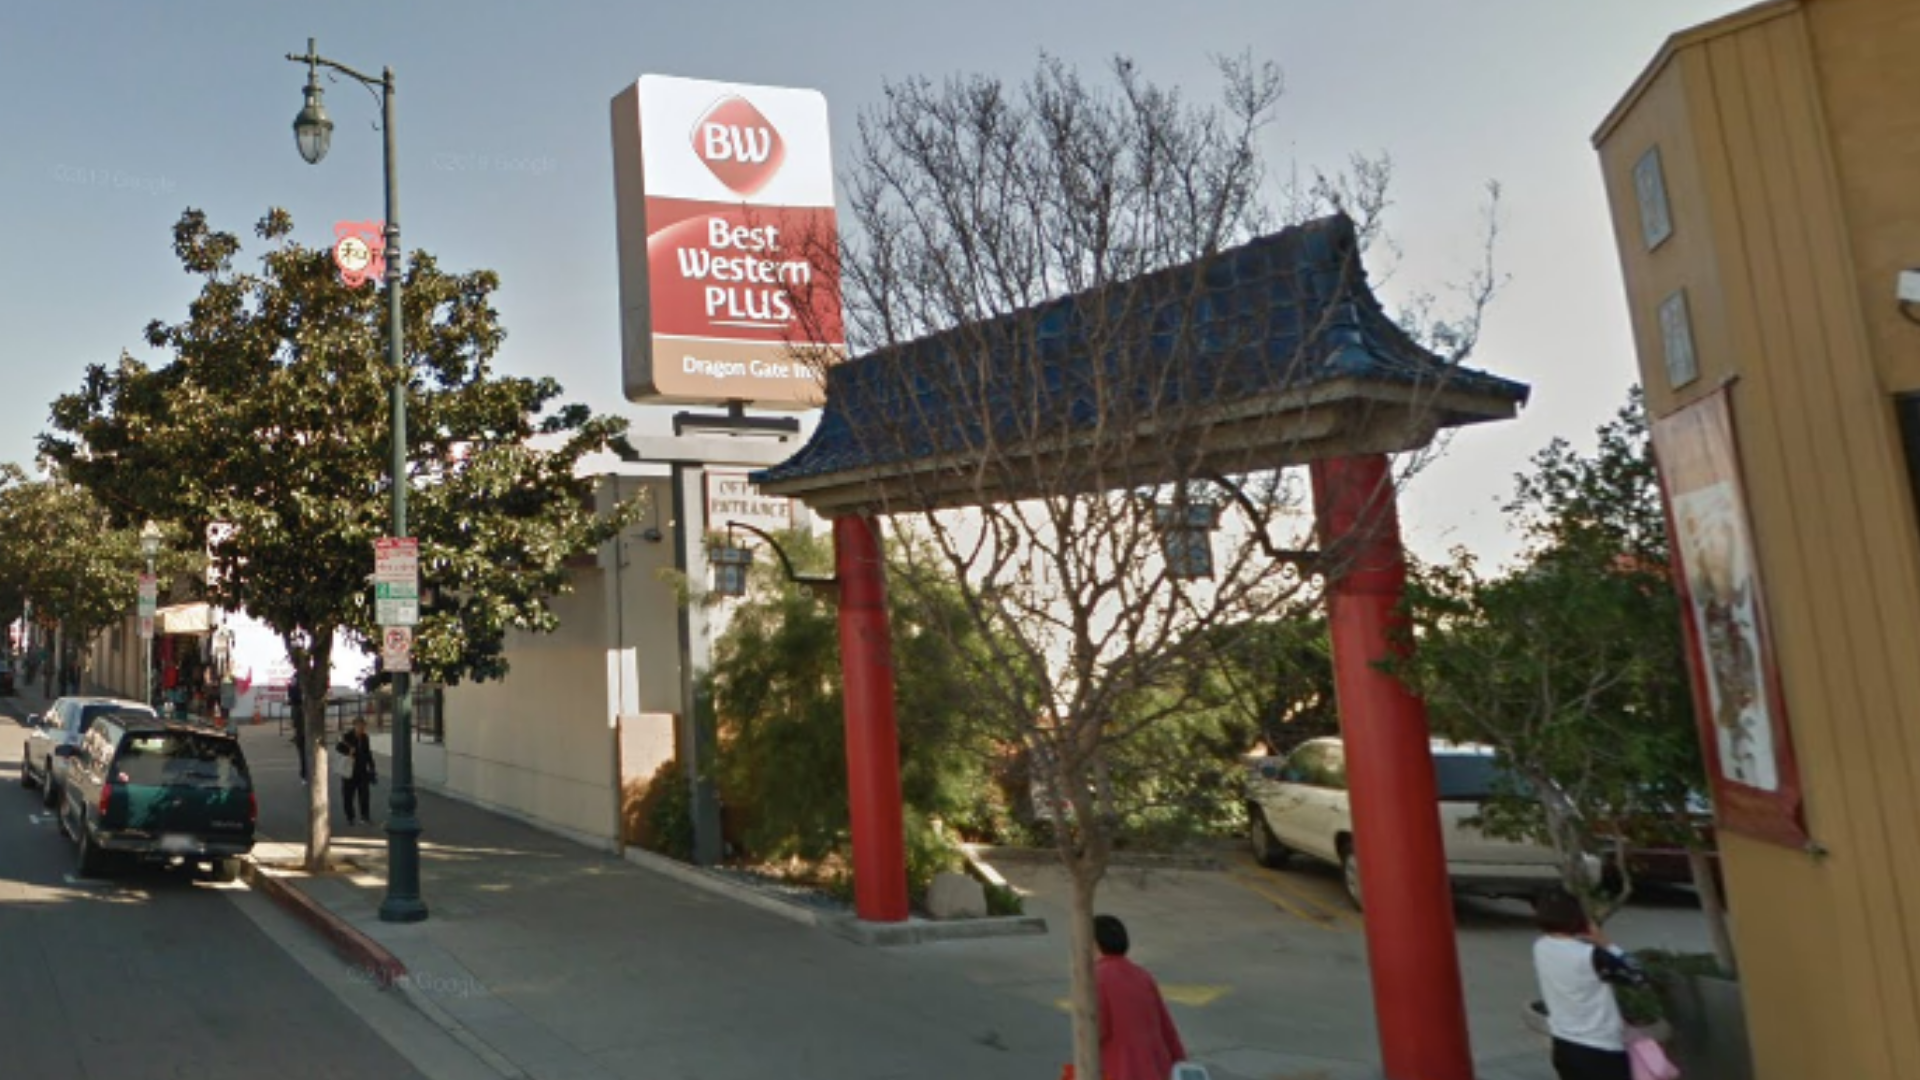 The Best Western Plus Dragon Gate Inn in Chinatown, Los Angeles is seen in a Google Maps image.